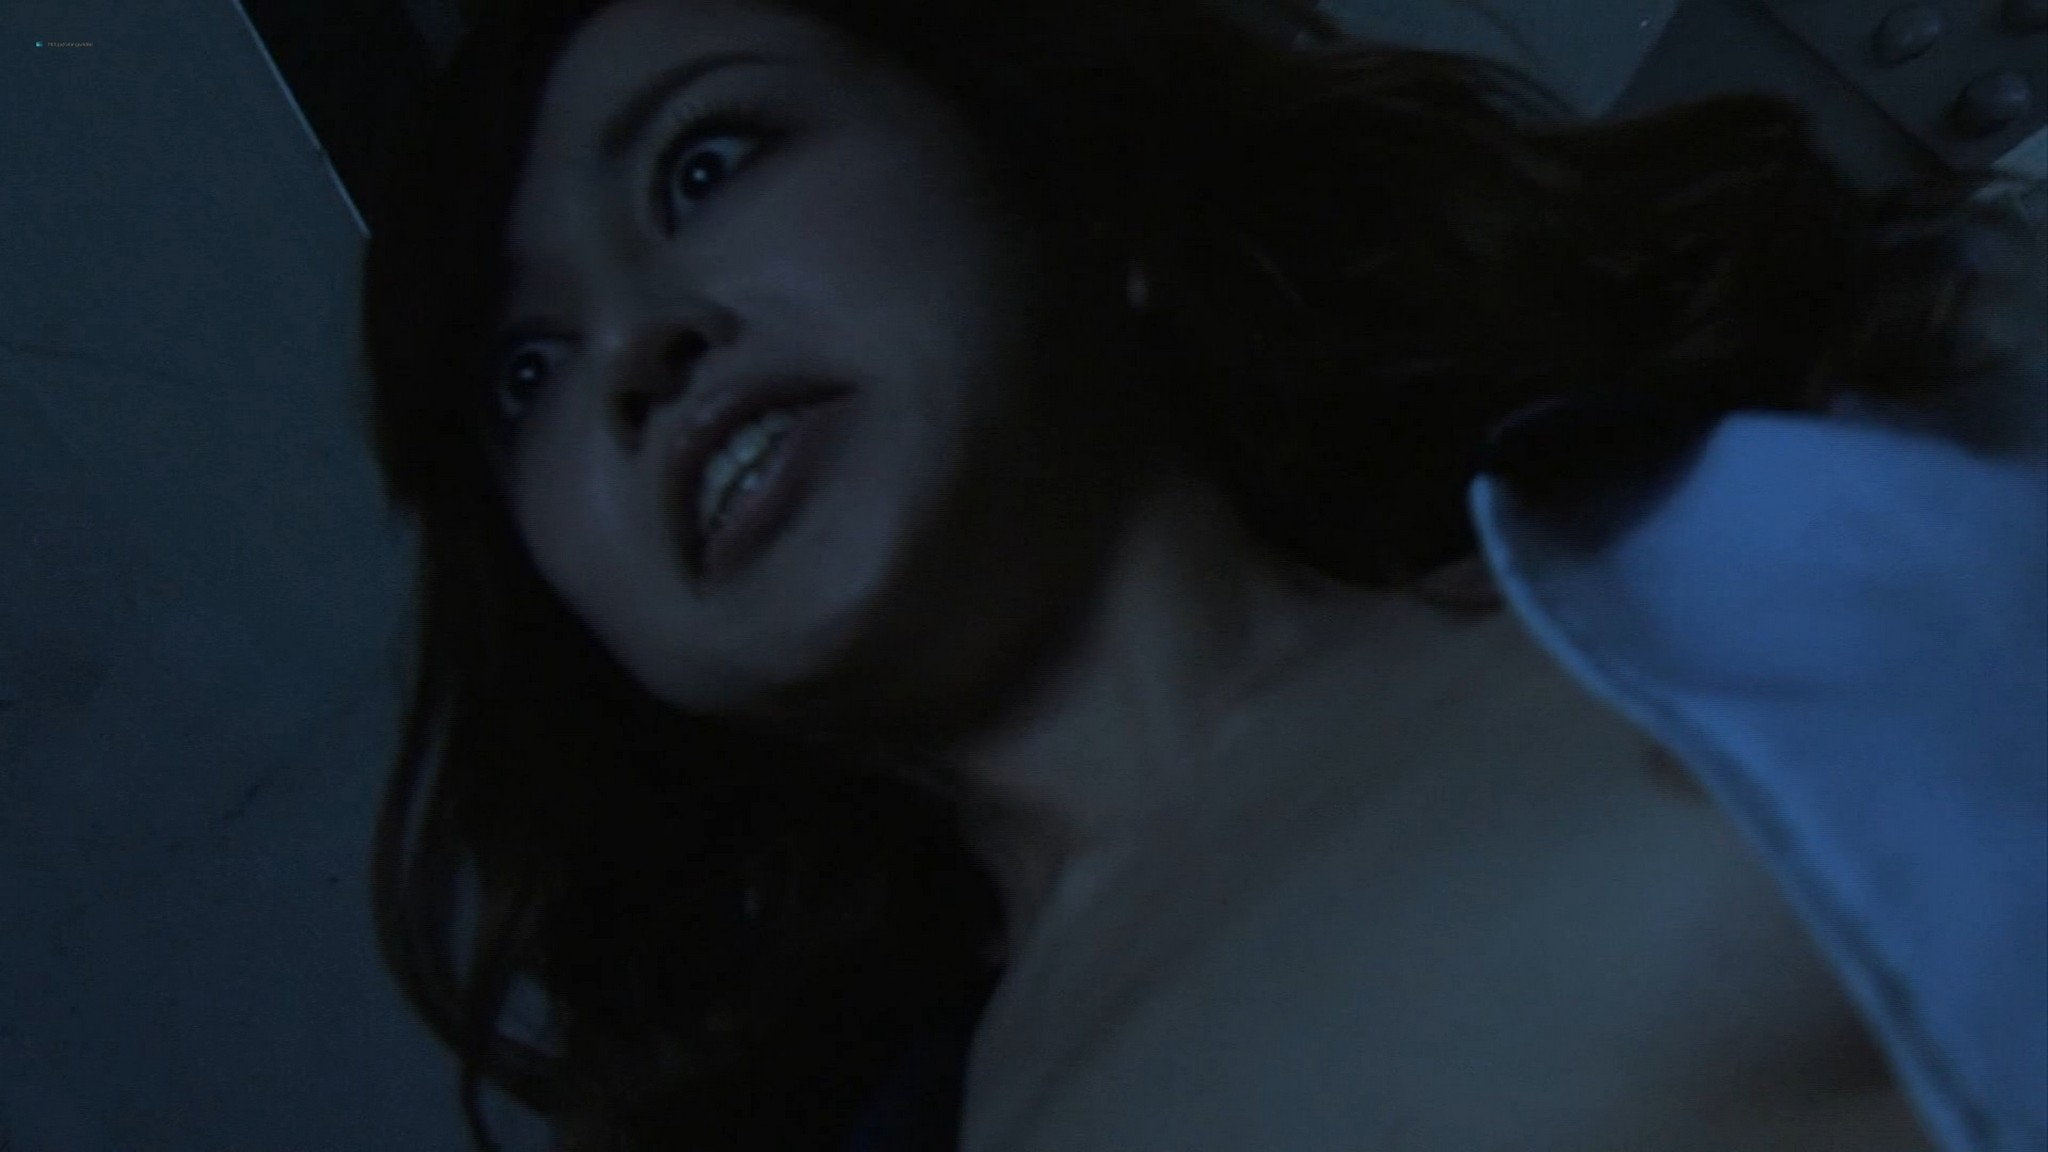 Yui Aikawa nude sex Asami Rina Aikawa and others nude and a lot of sex Lust of the Dead JP 2012 1080p BluRay 17